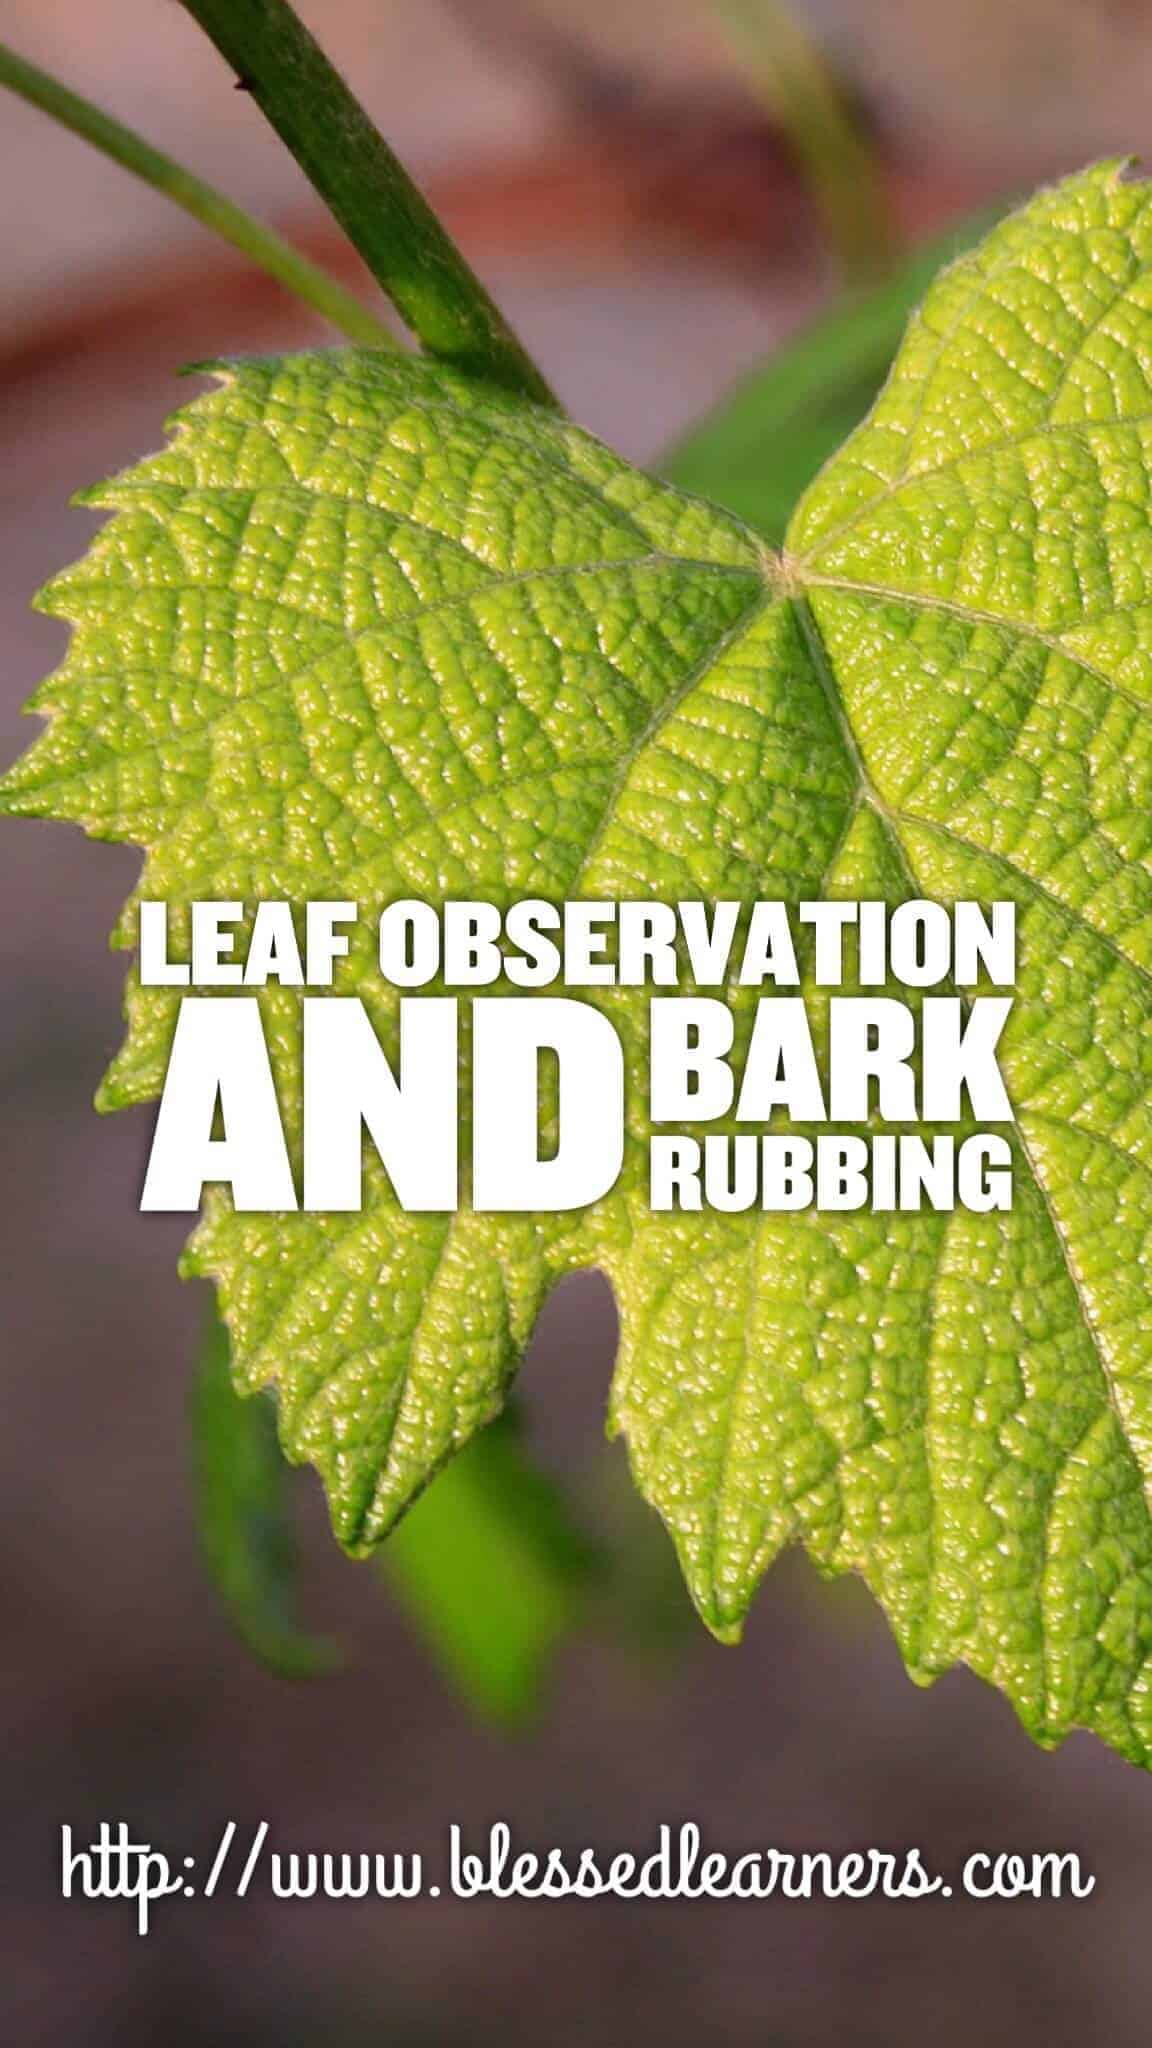 Leaf Observation and Bark Rubbing